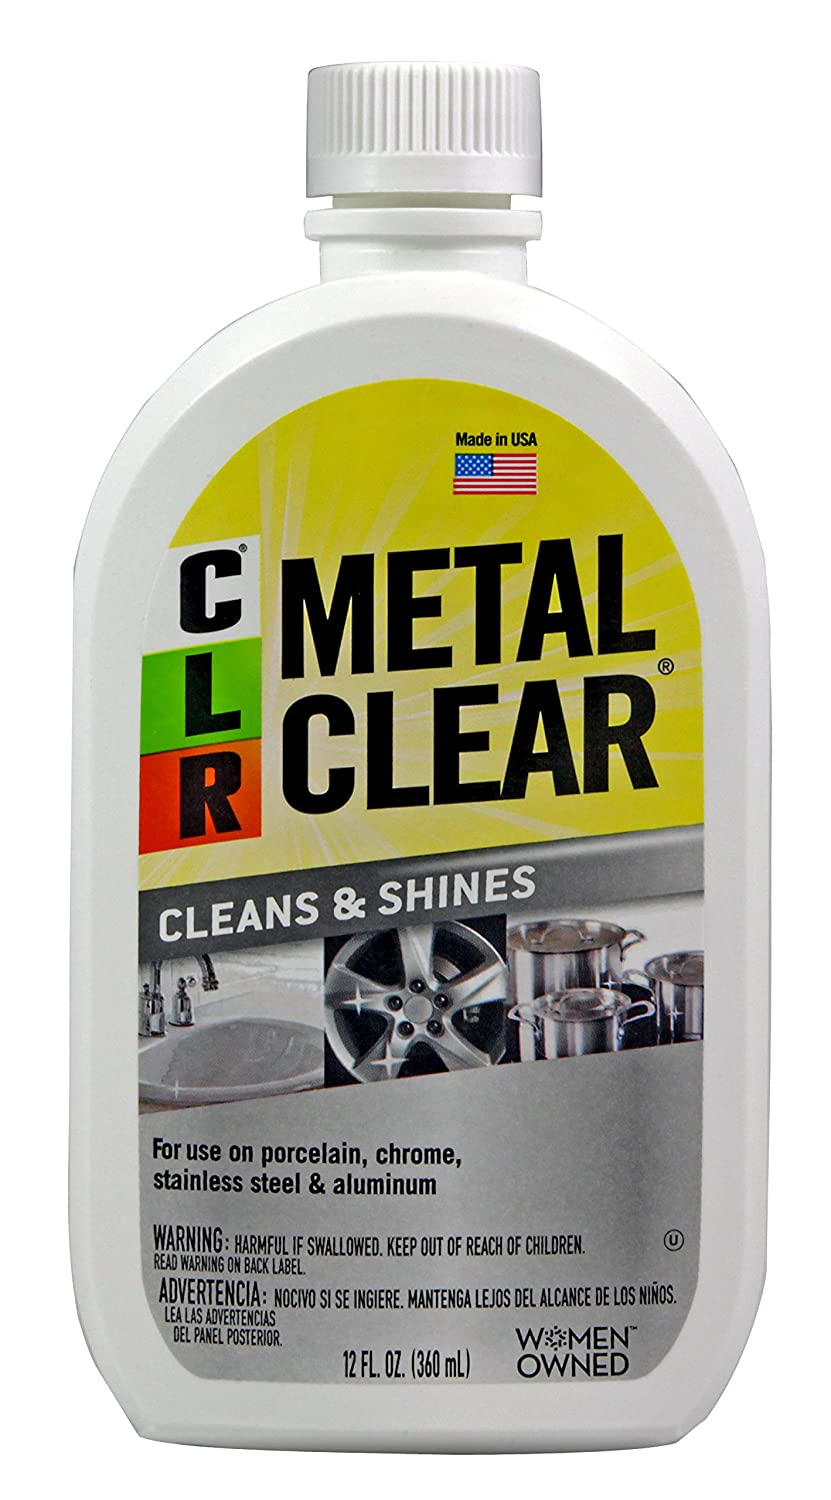 Amazon.com: CLR MC-12 Metal Clear, 12 oz. Bottle: Industrial & Scientific